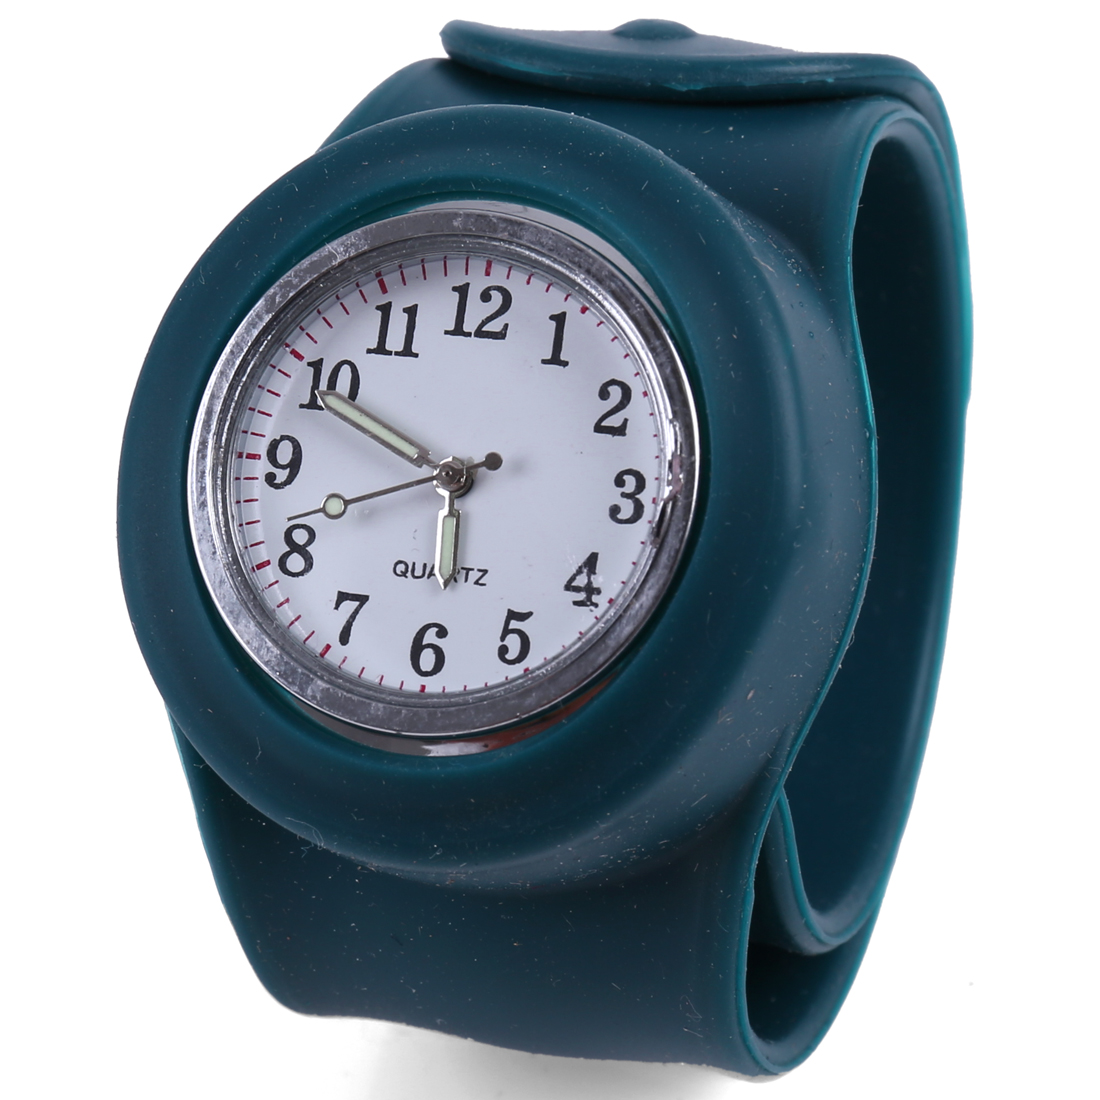 Dark Green Fashion Adjustable in Any Size Band Design Wrist Watch for Kids